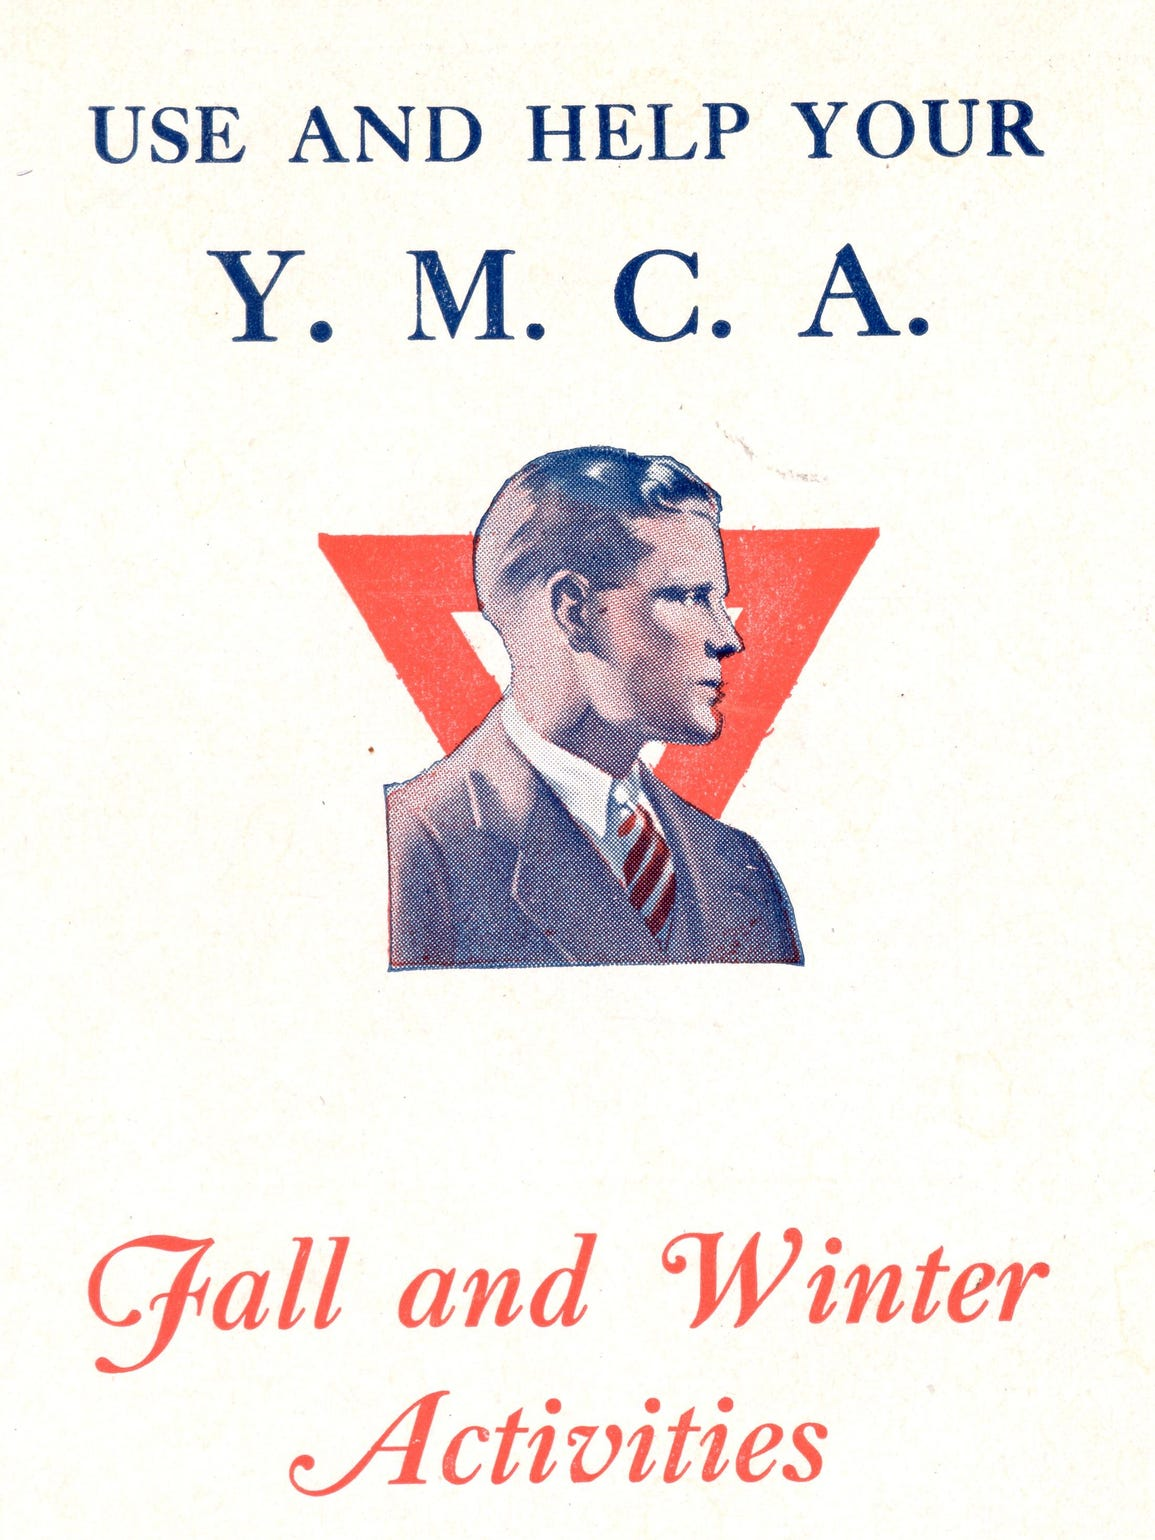 YMCA brochure from 1927, a precursor to today's Program